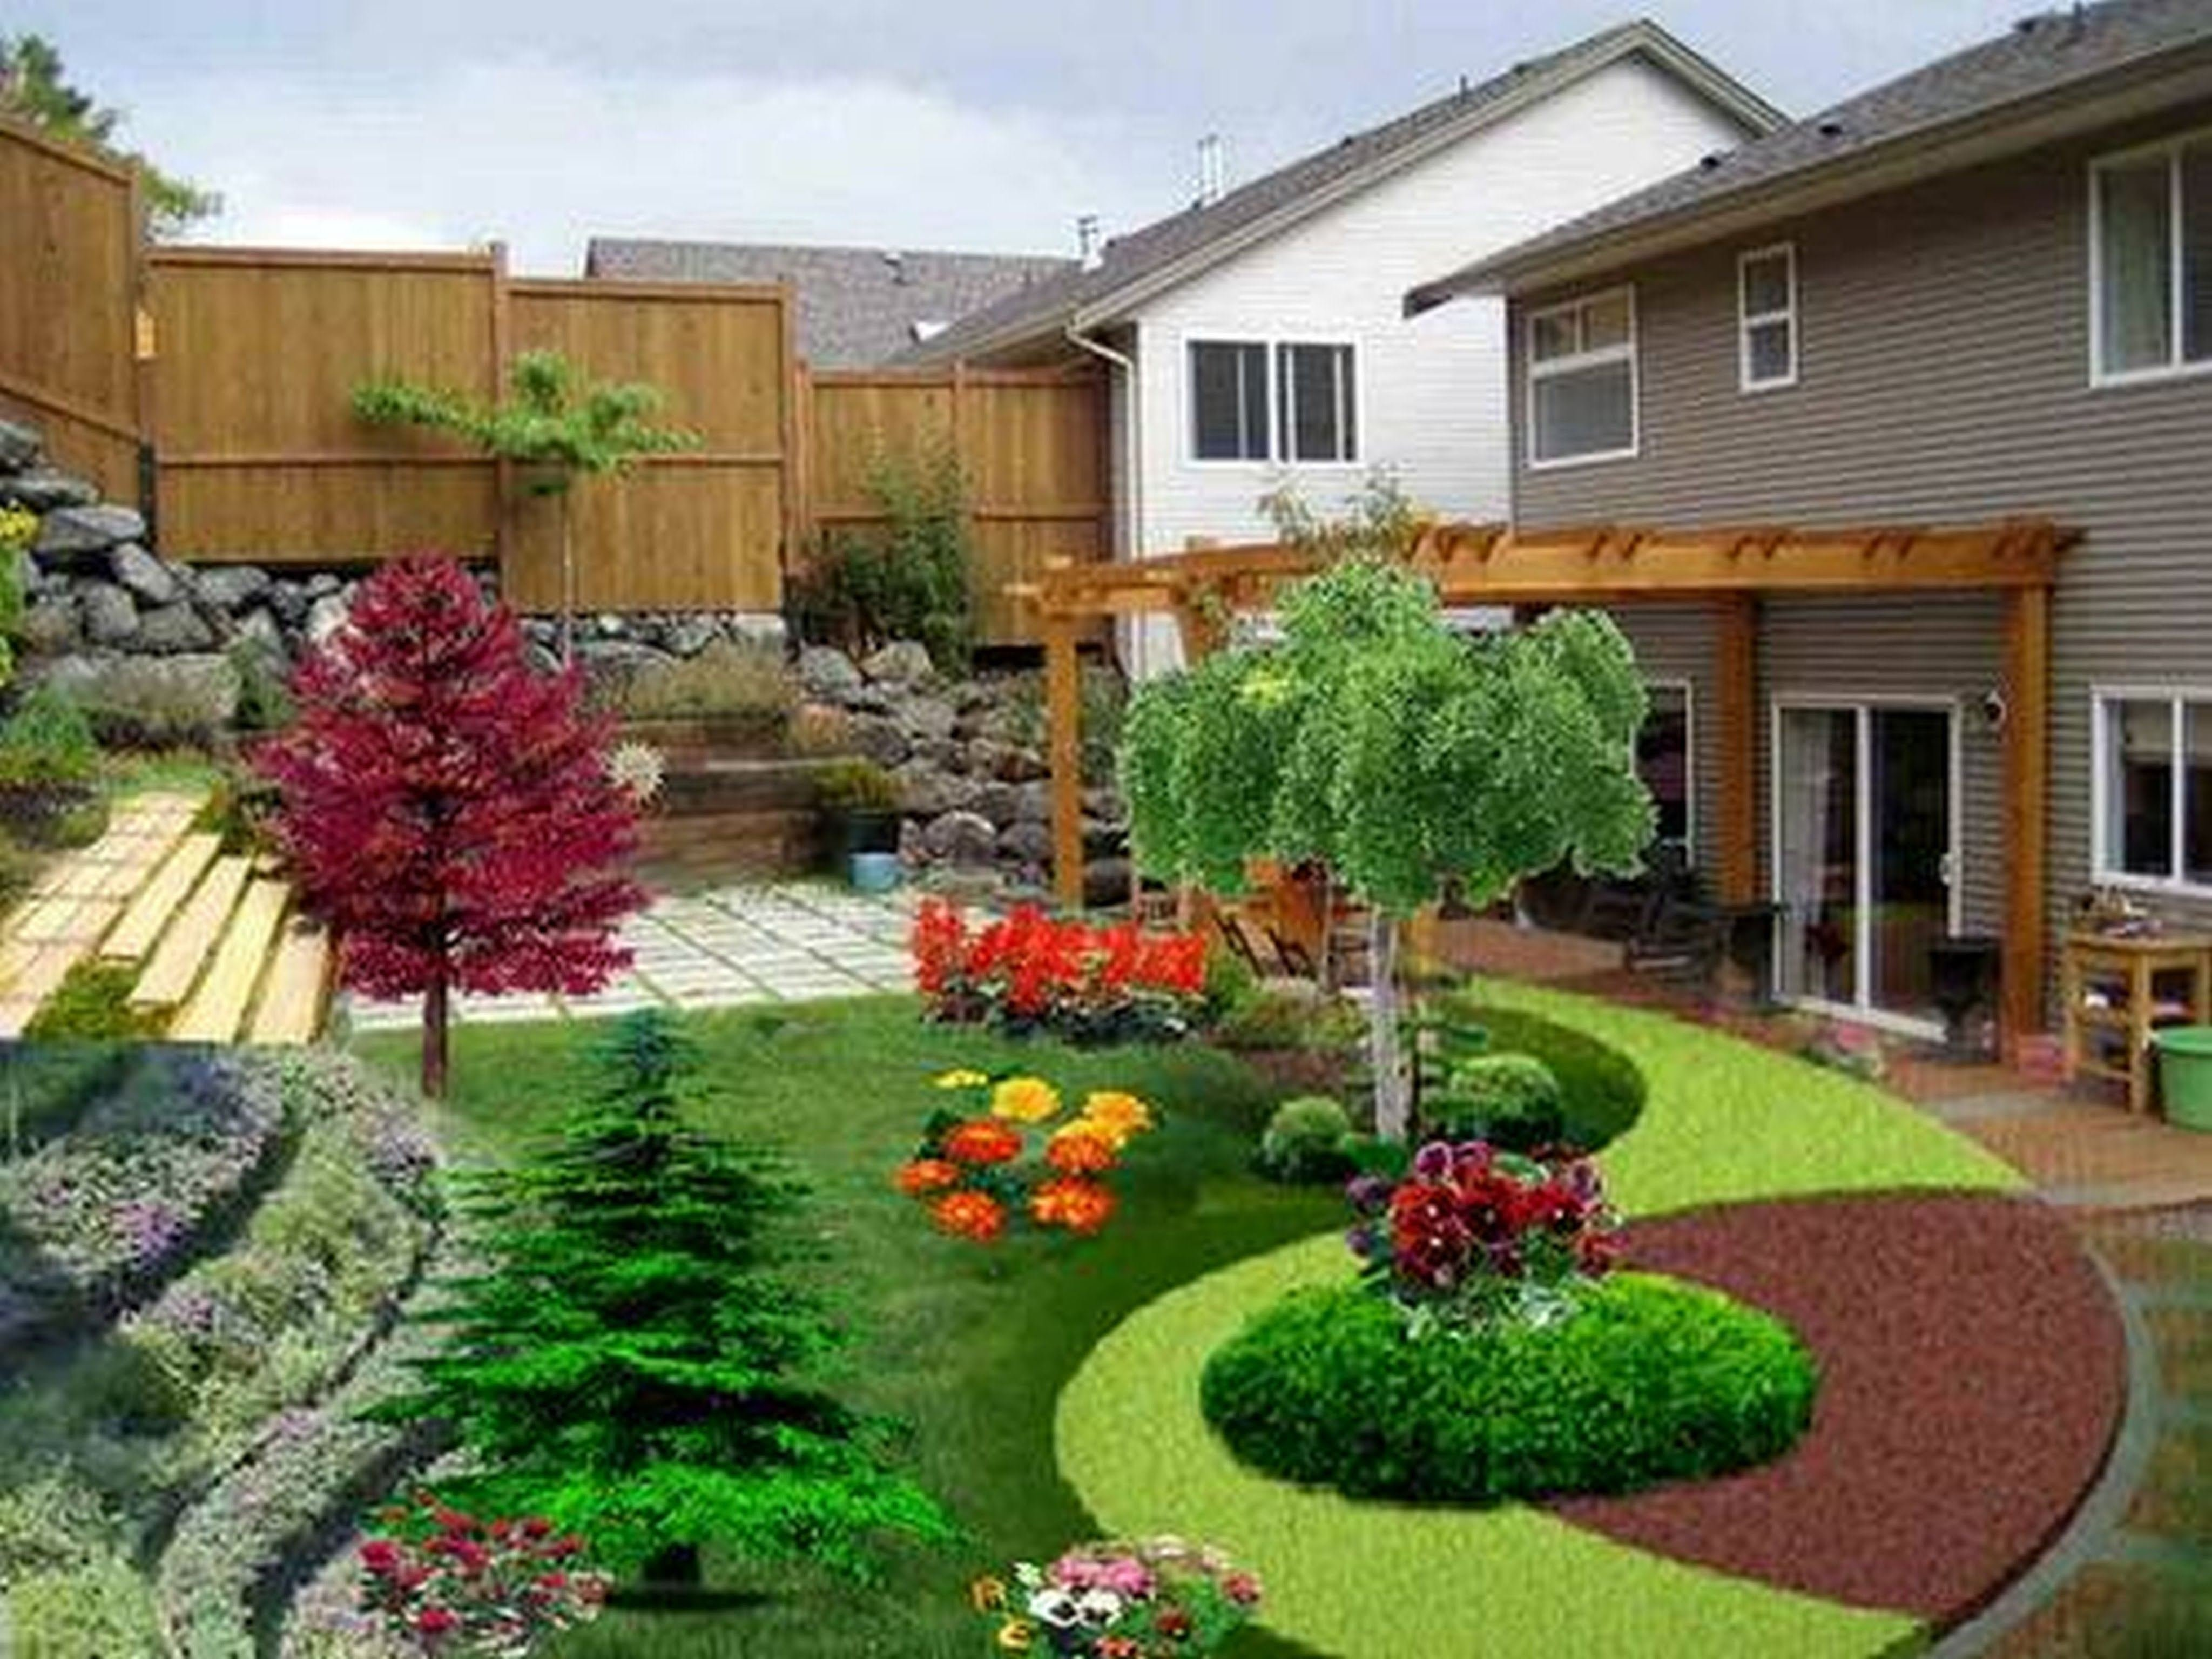 10 Lovable Front Of The House Landscaping Ideas front garden ideas for front of house nice tips for front yard 2 2020